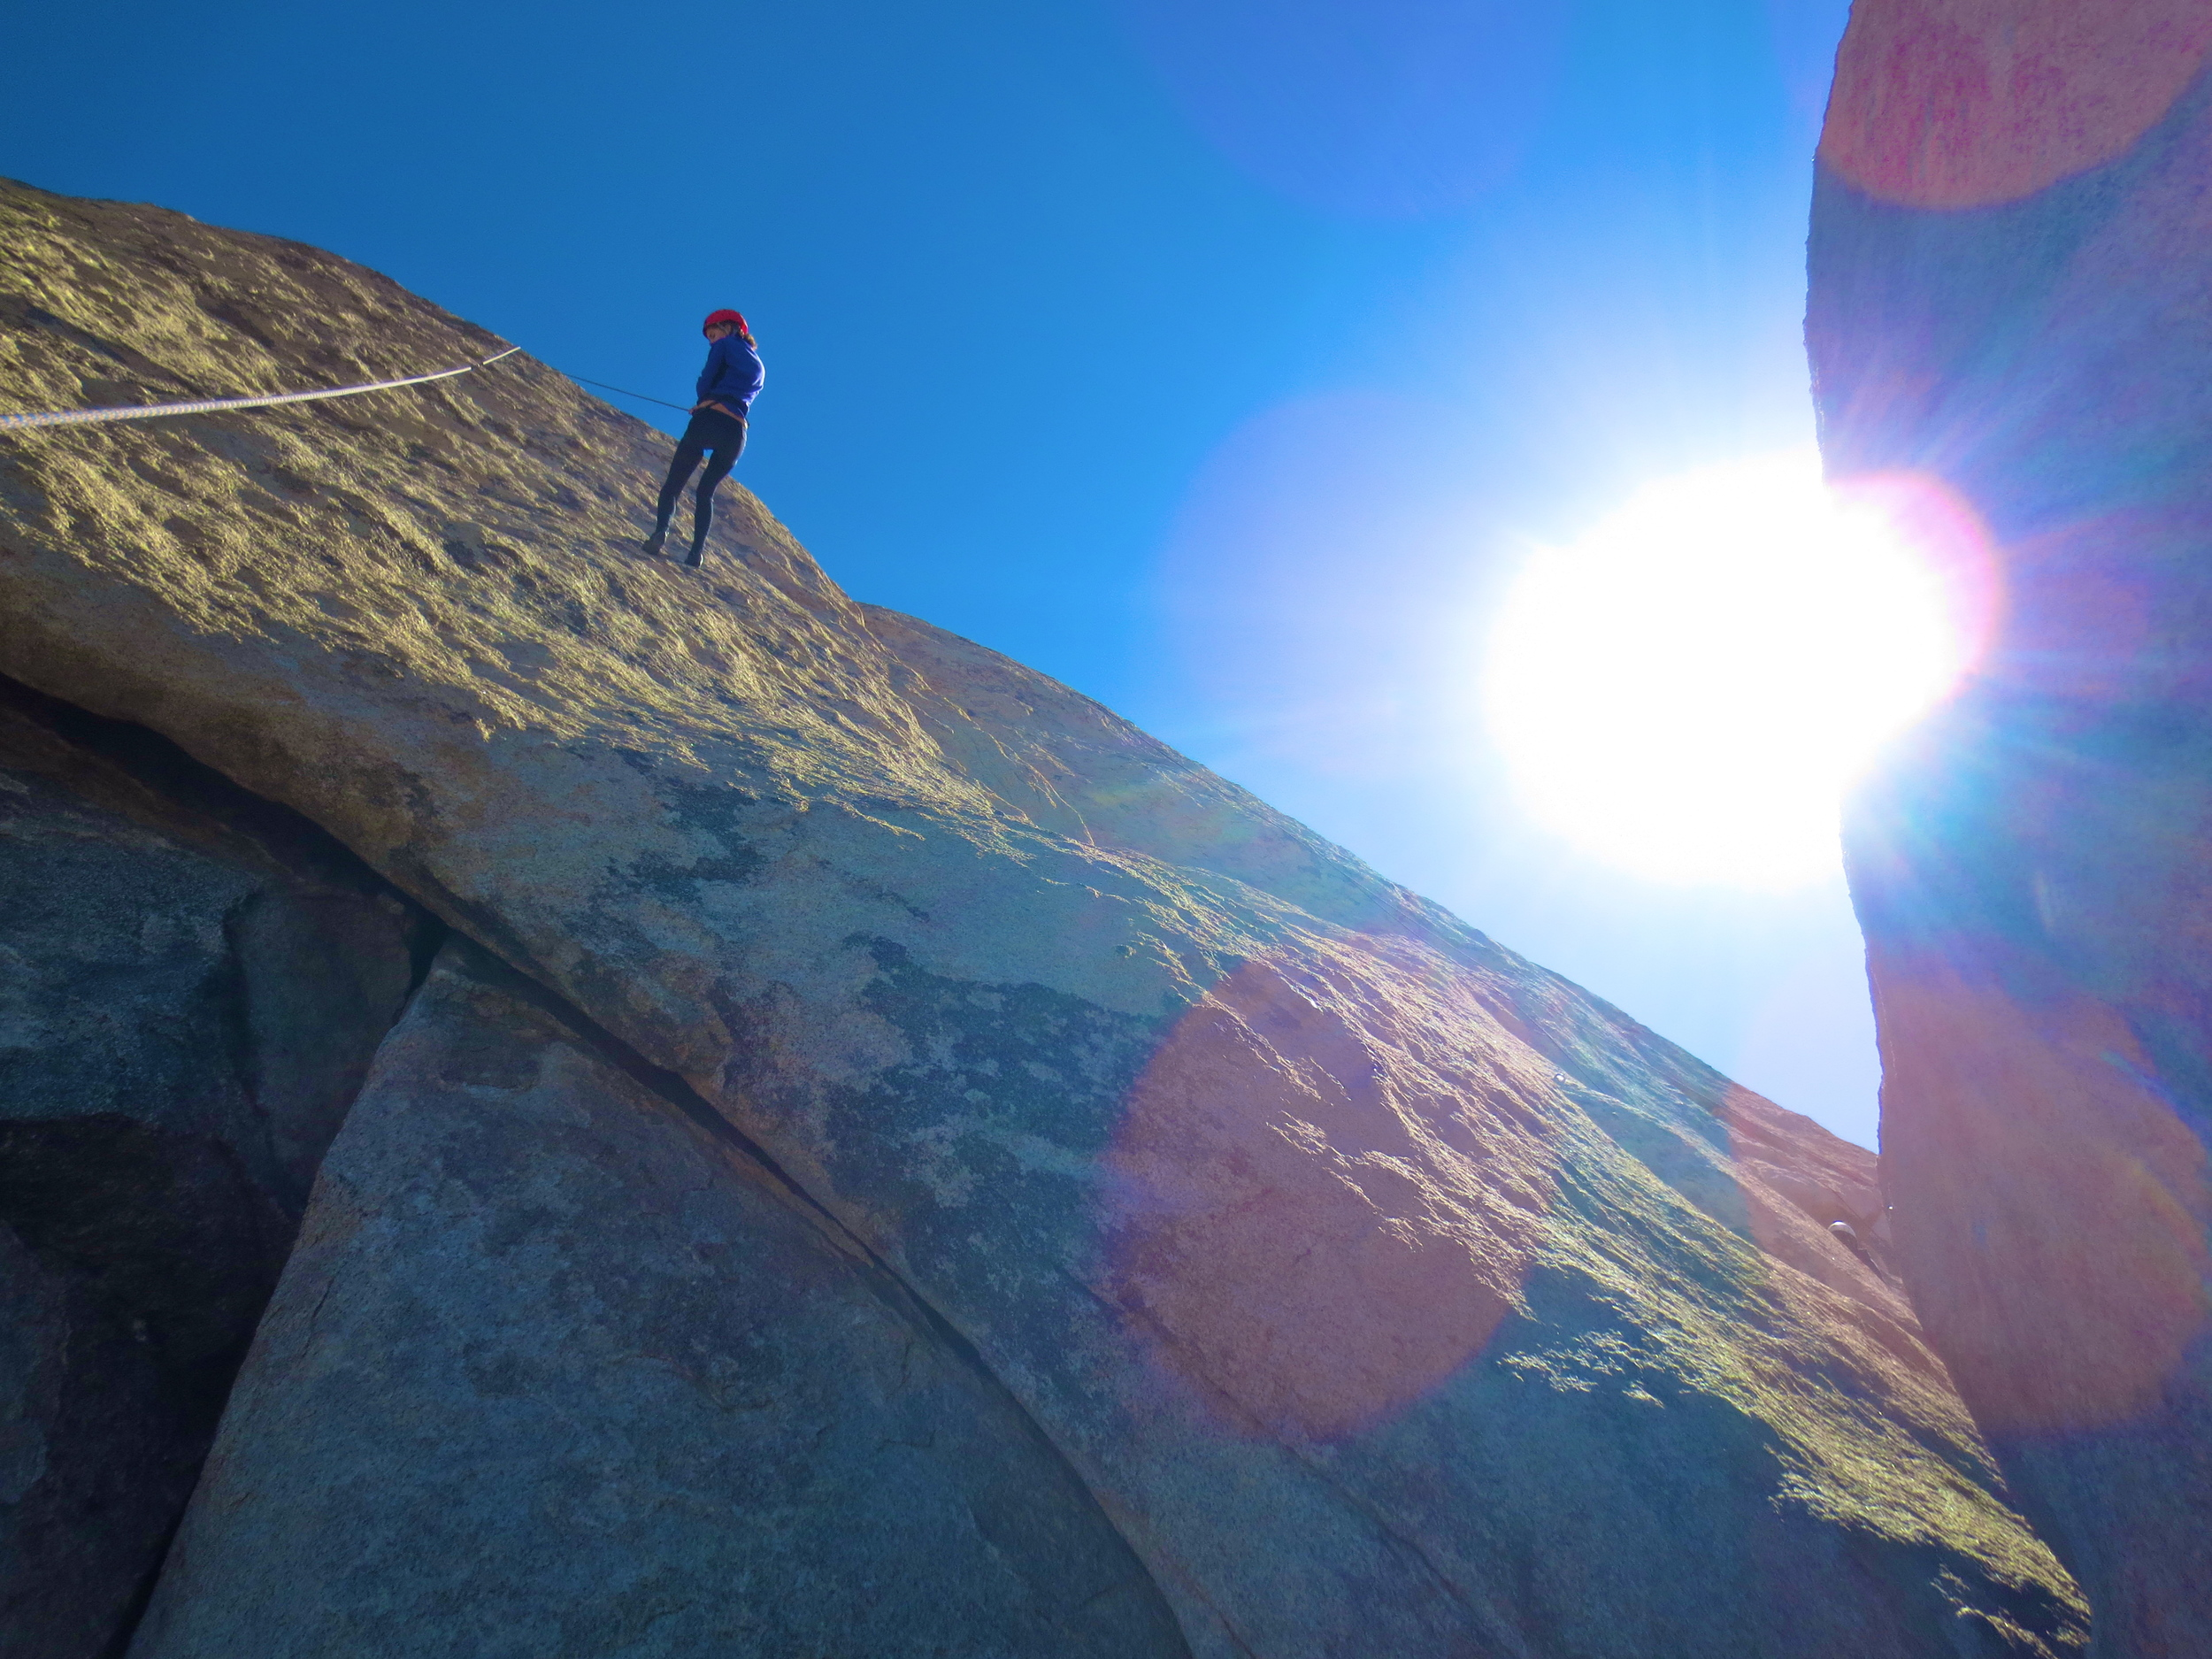 Kaci Nicole - Rock Climbing in Joshua Tree